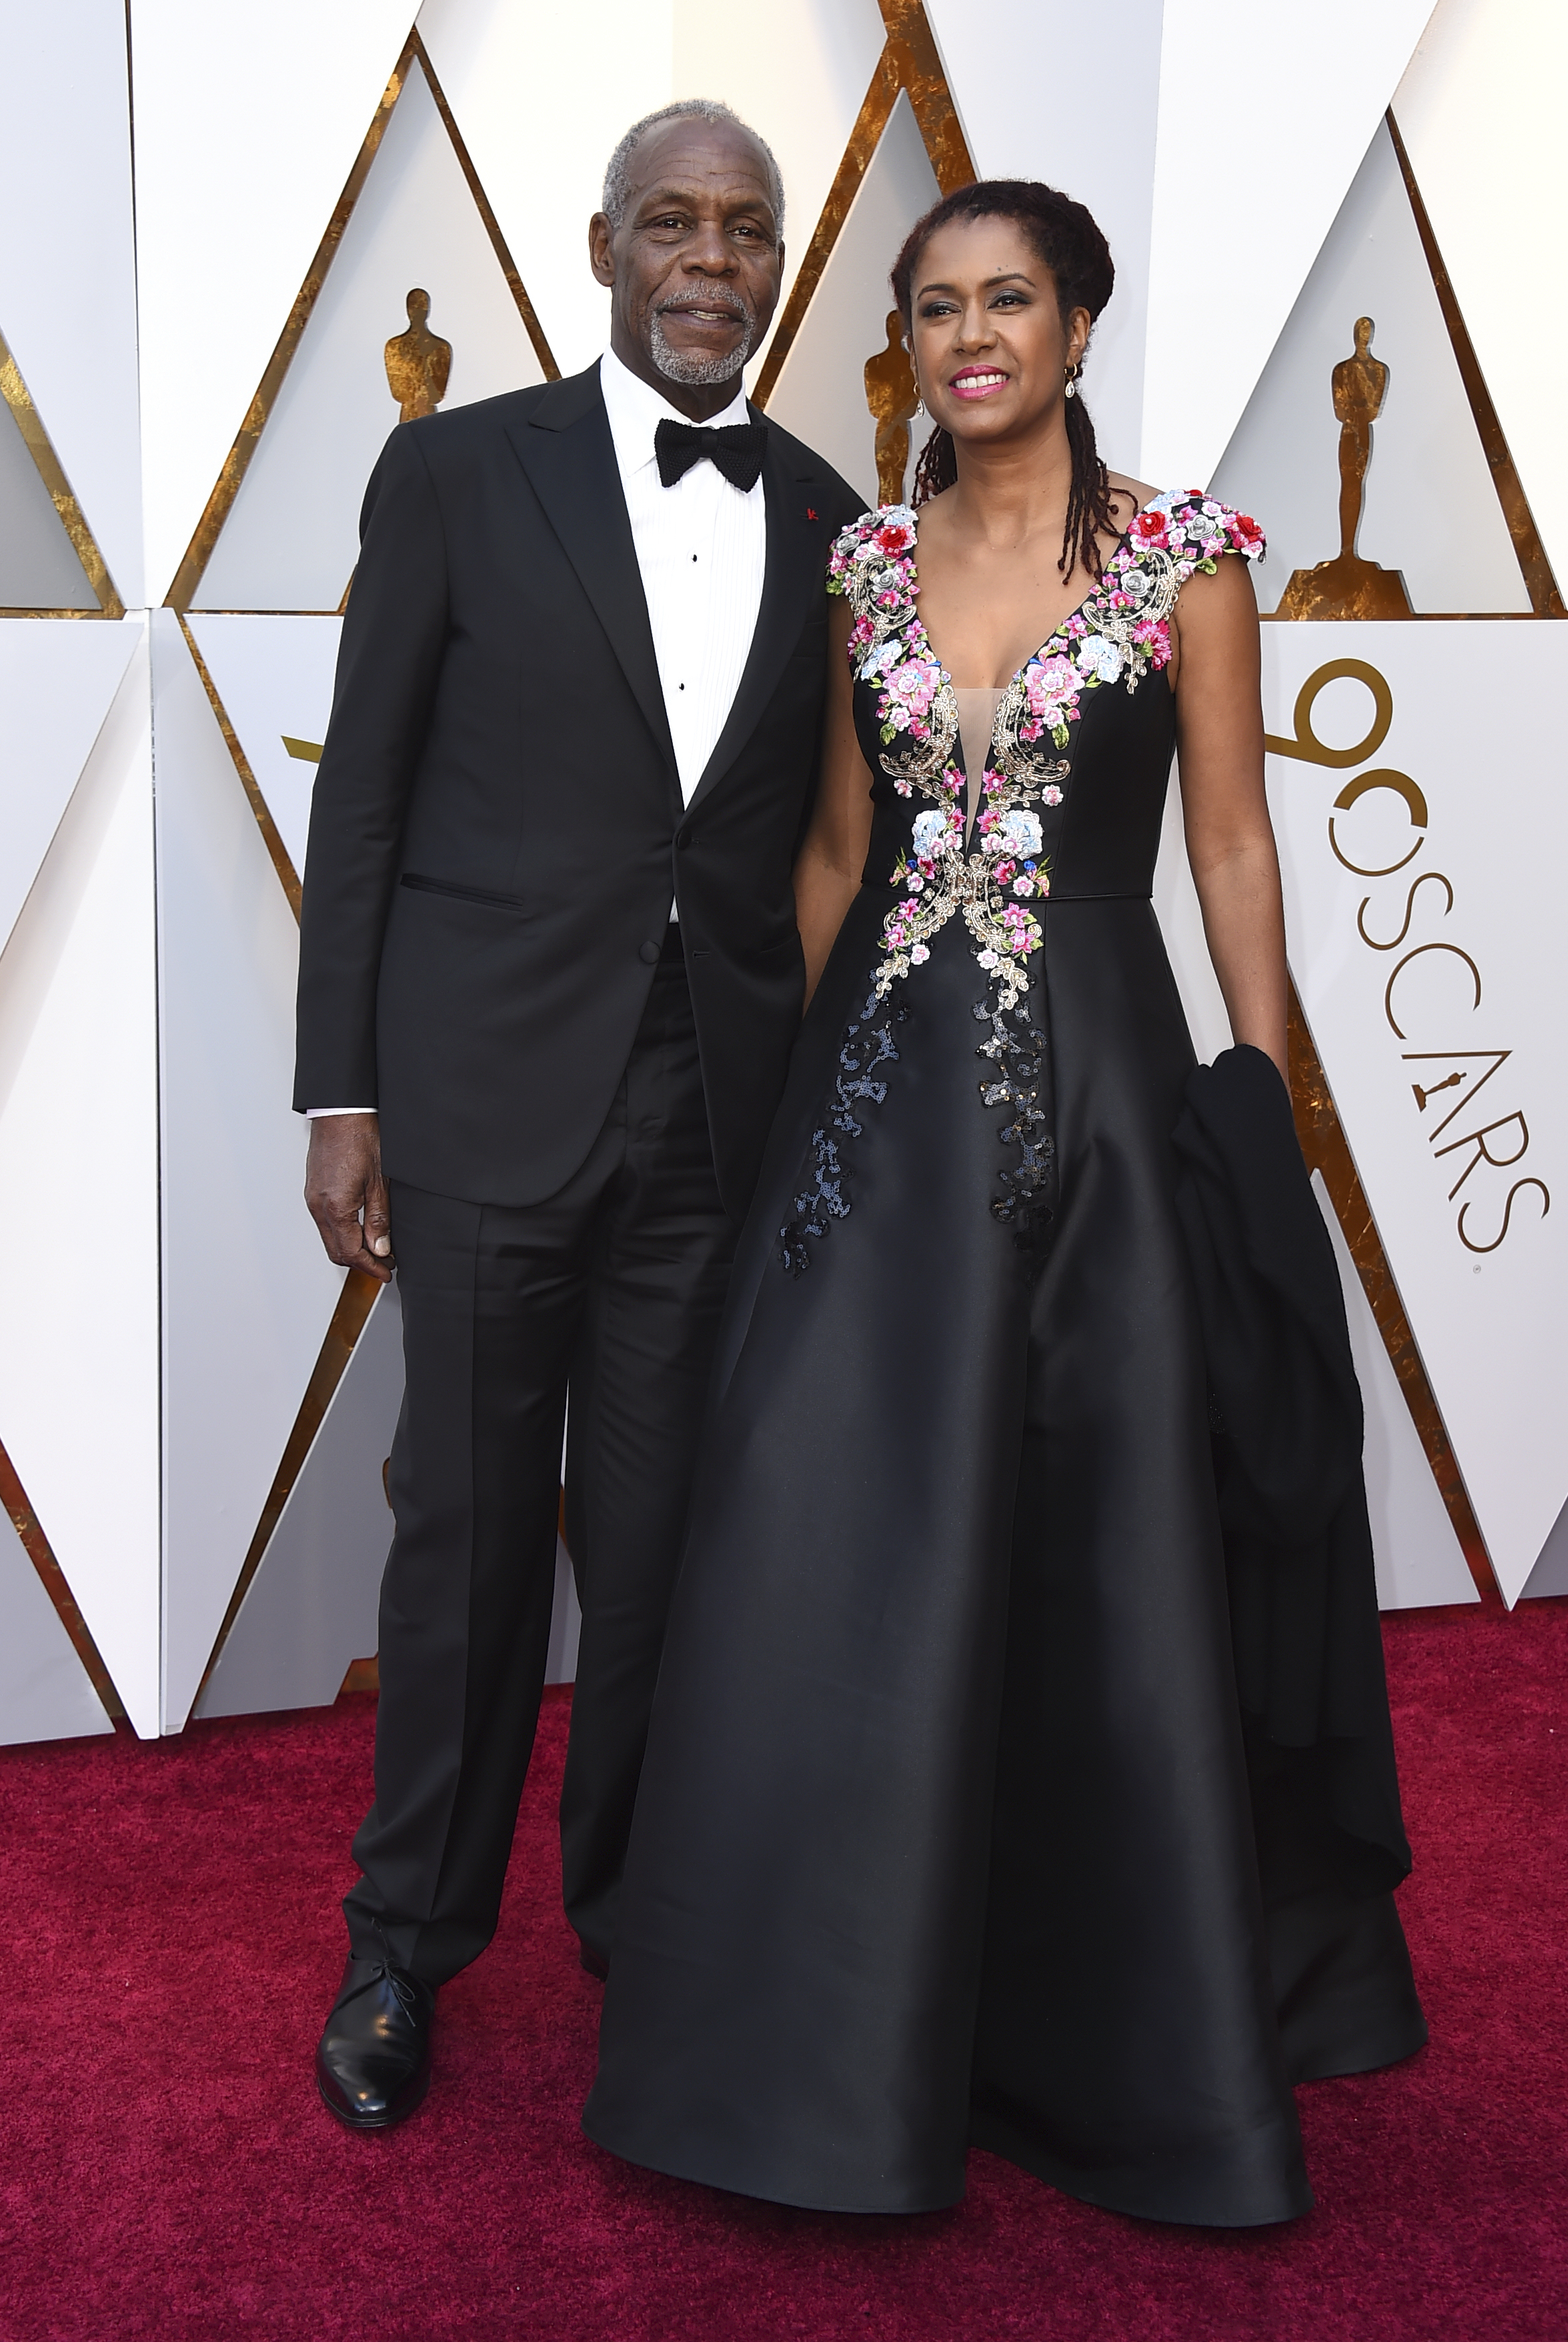 "<div class=""meta image-caption""><div class=""origin-logo origin-image none""><span>none</span></div><span class=""caption-text"">Danny Glover, left, and Eliane Cavalleiro arrive at the Oscars on Sunday, March 4, 2018, at the Dolby Theatre in Los Angeles. (Jordan Strauss/Invision/AP)</span></div>"